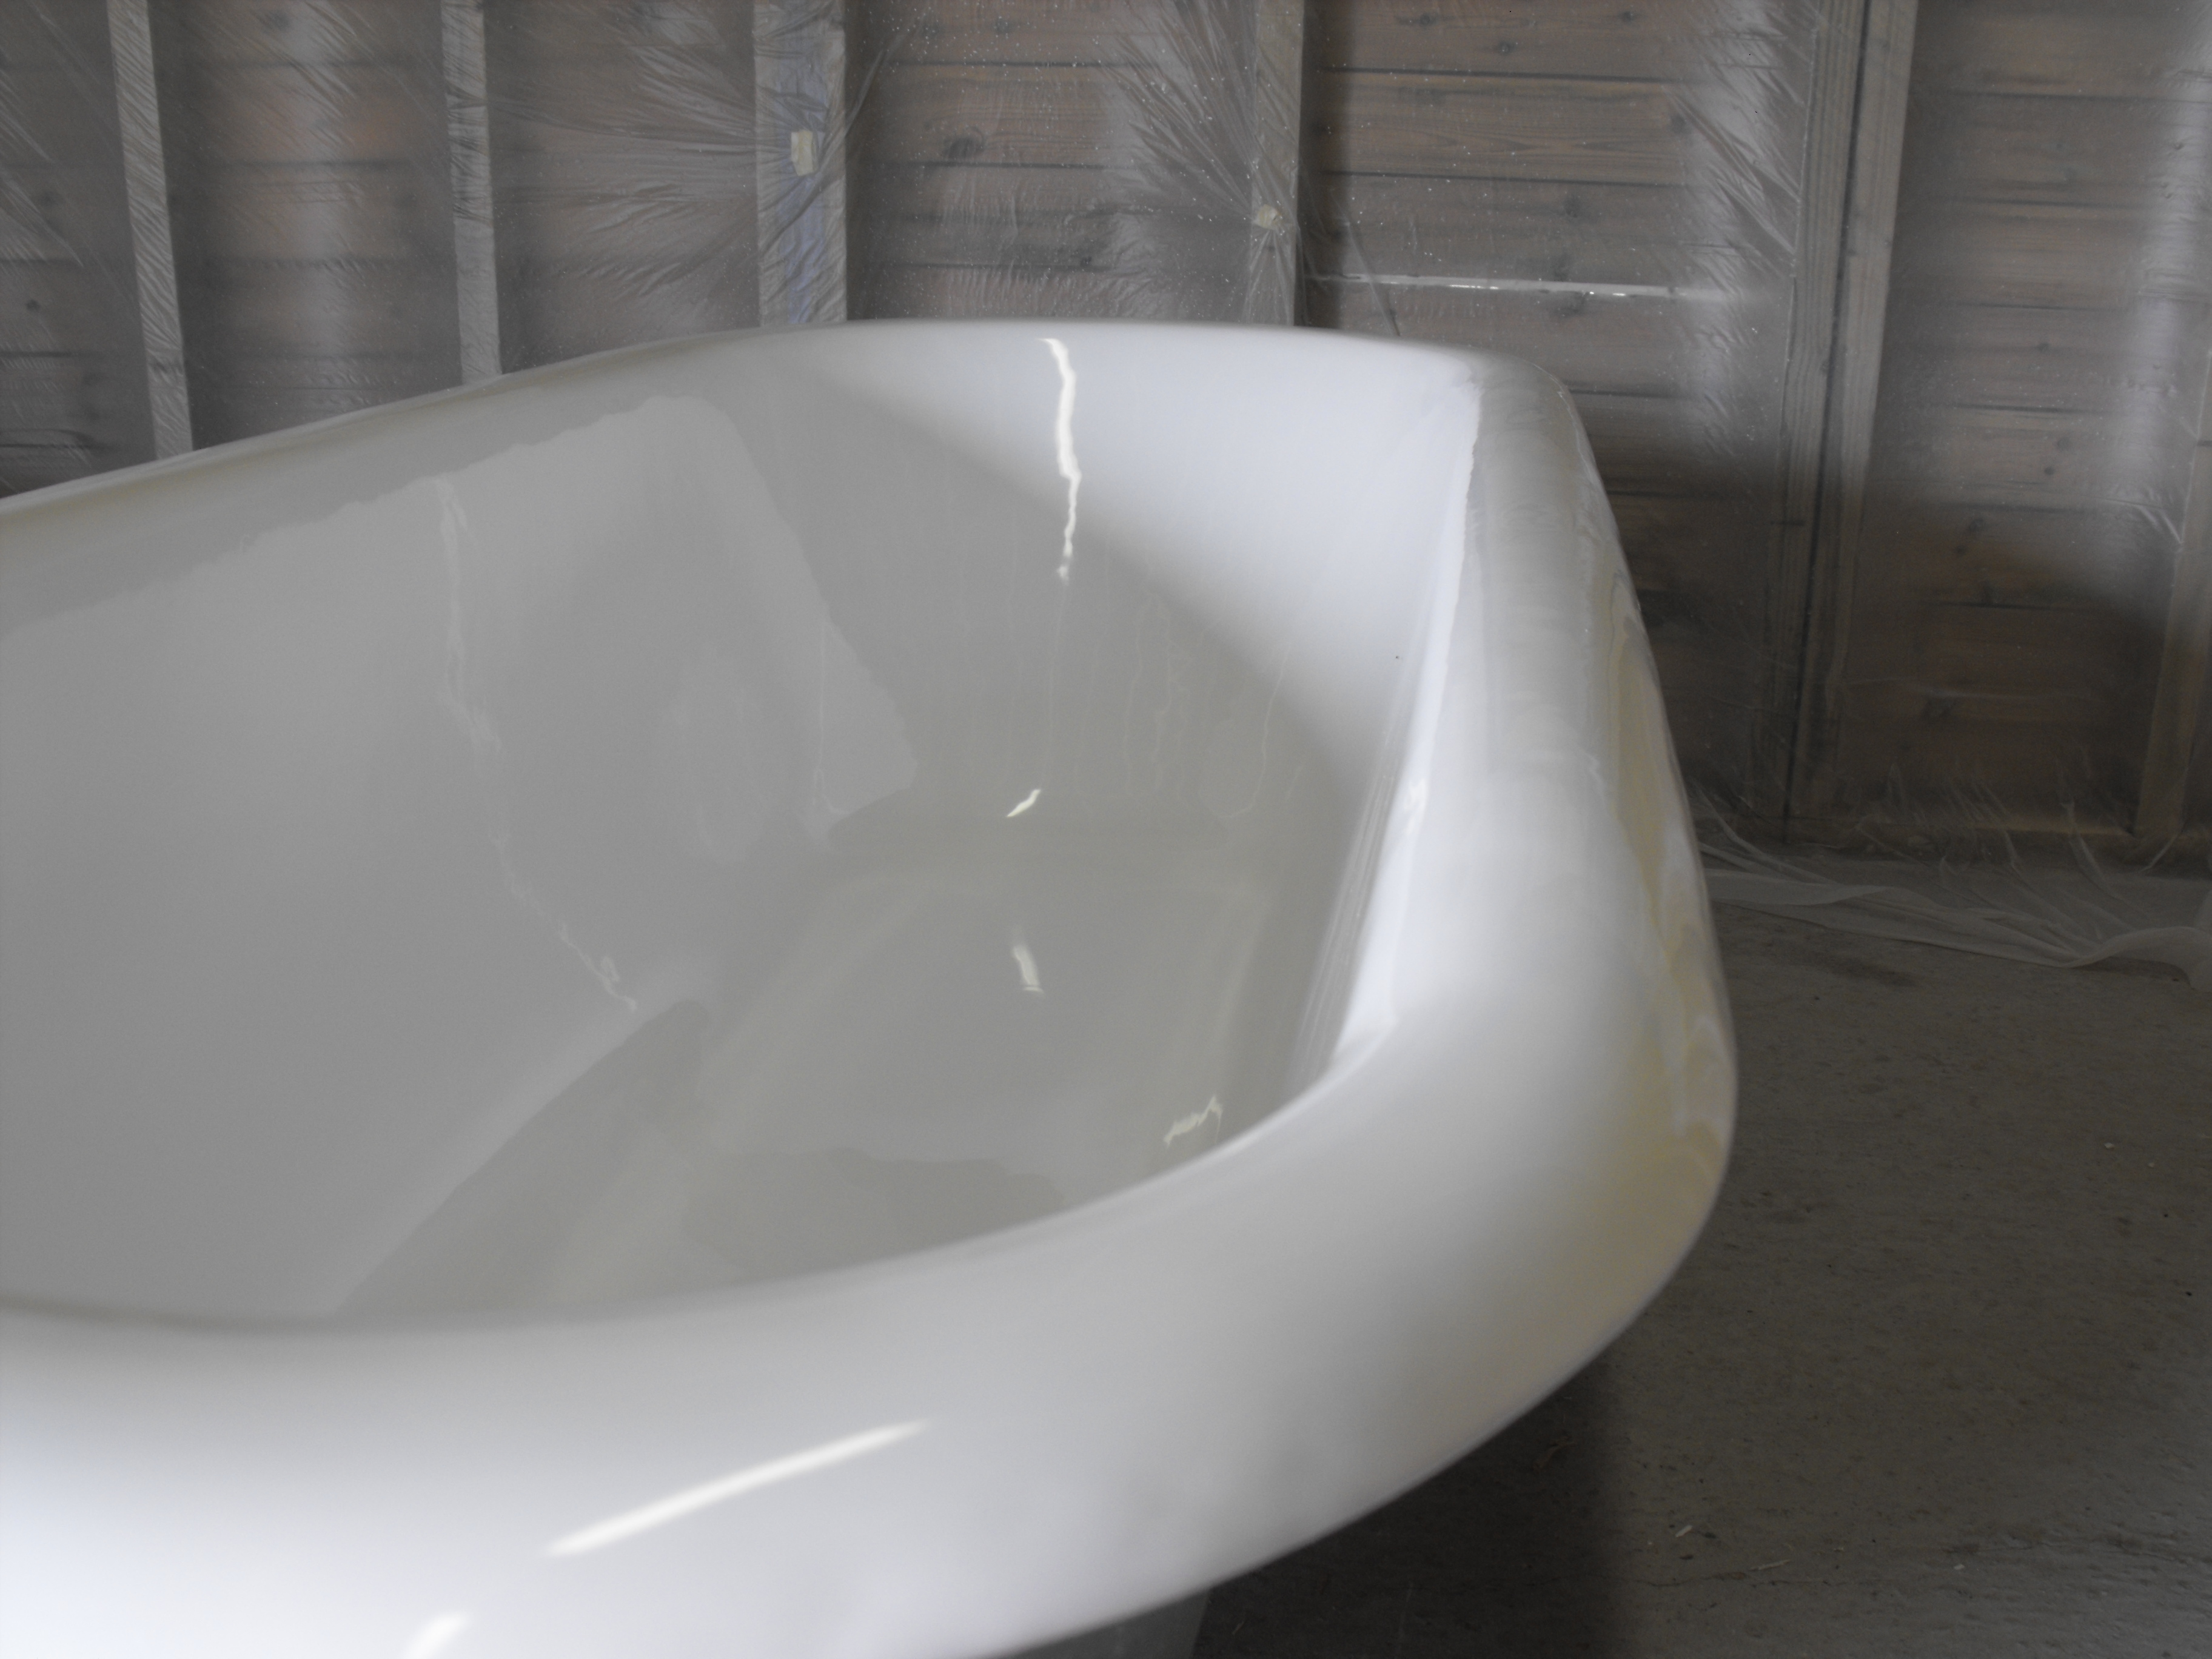 Beautiful How To Paint A Bathtub Thick Paint A Bathtub Square Paint For Tubs Painting A Tub Youthful Bathtub Refinishing Company Purple Can You Paint A Tub